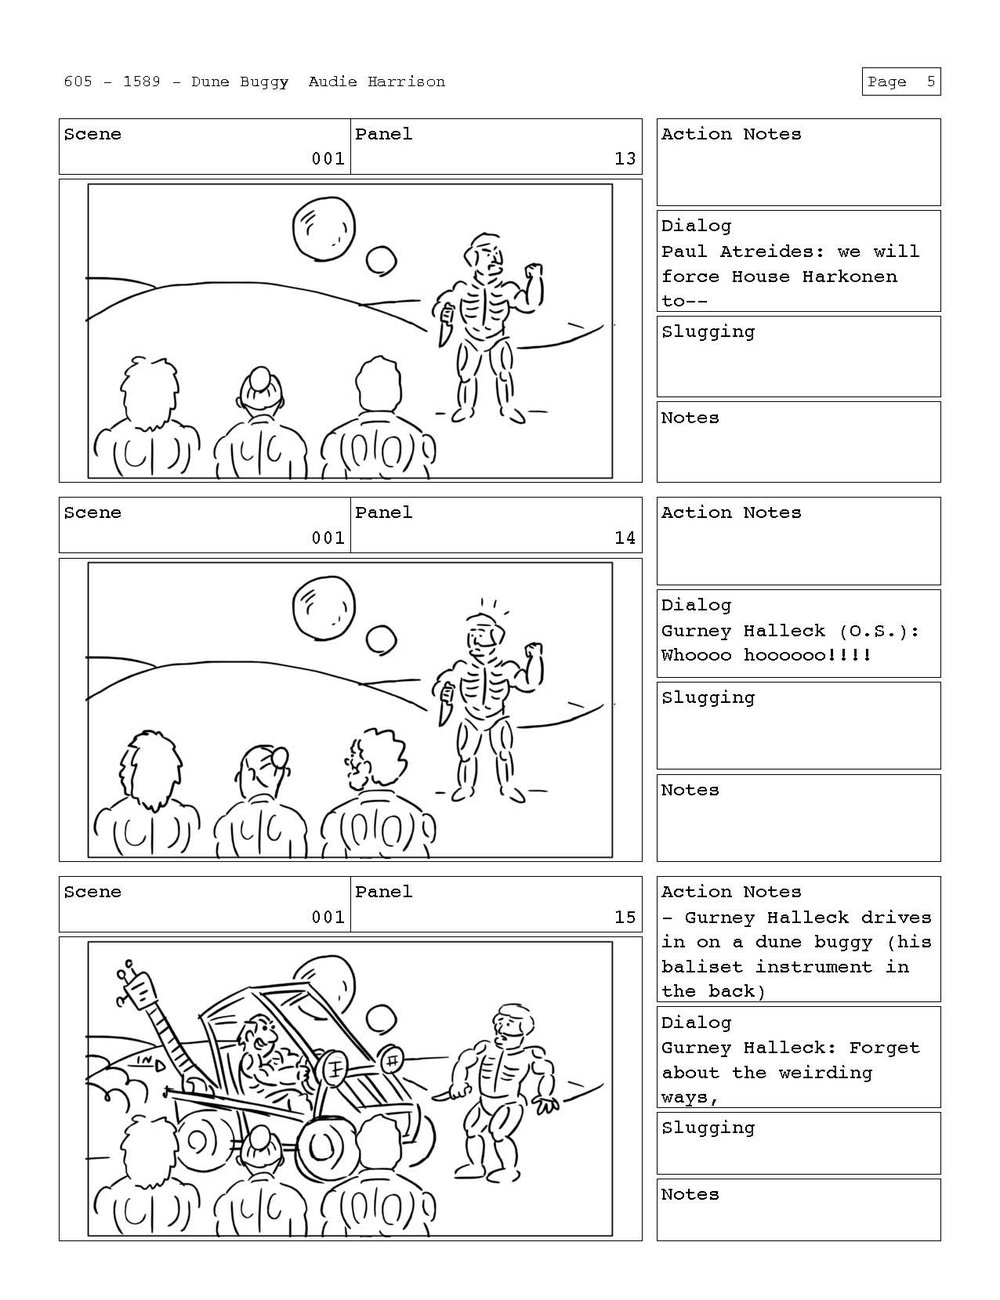 Dune_Buggy_Page_06.jpg